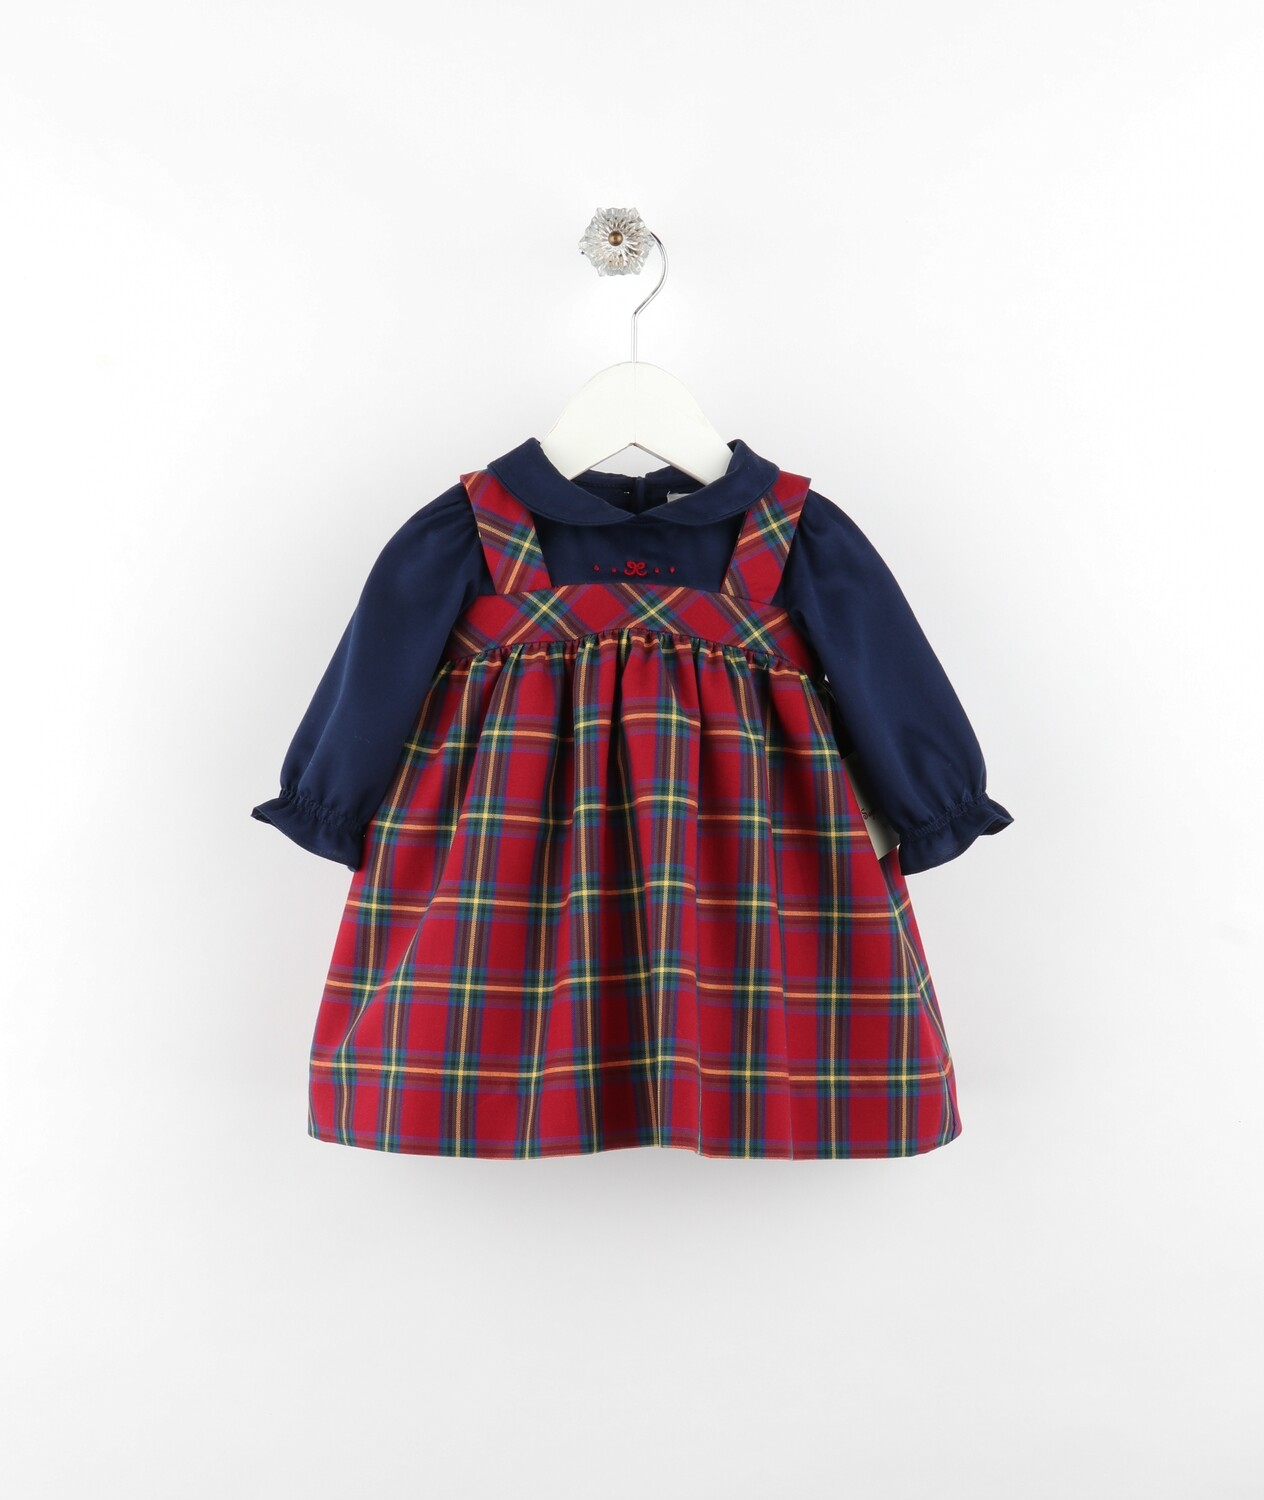 Sophie & Lucas Cranberry Tartan Jumper Dress